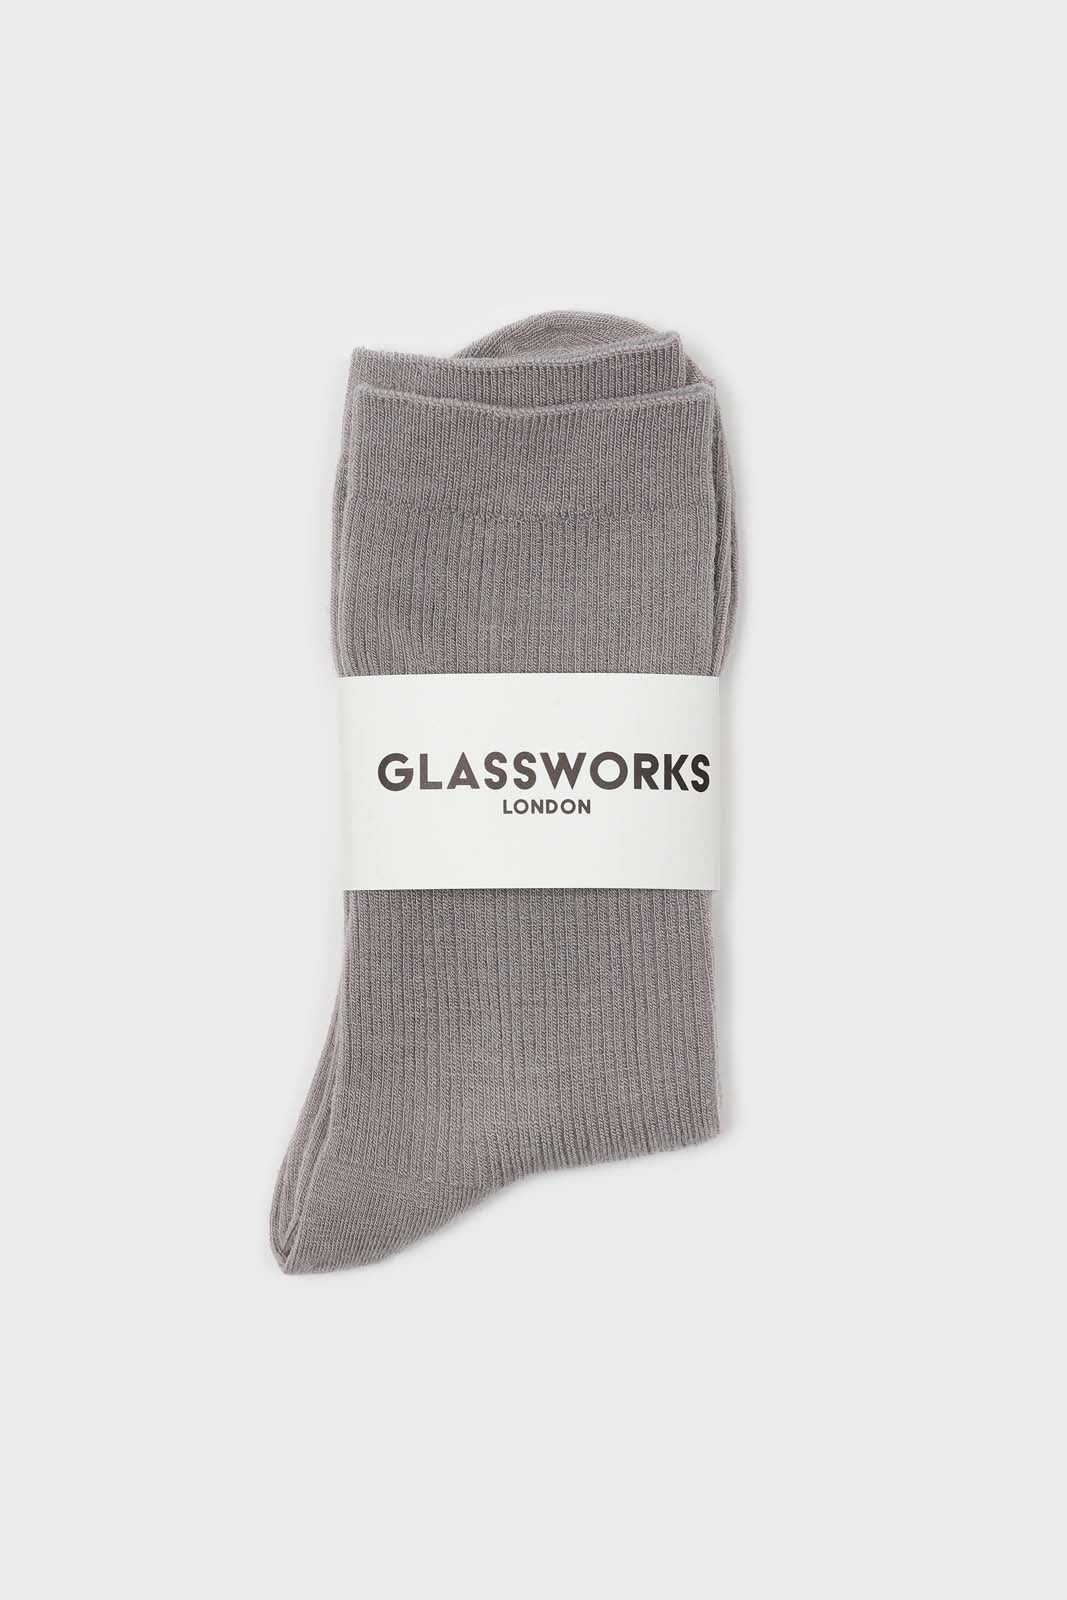 Light grey merino wool socks1